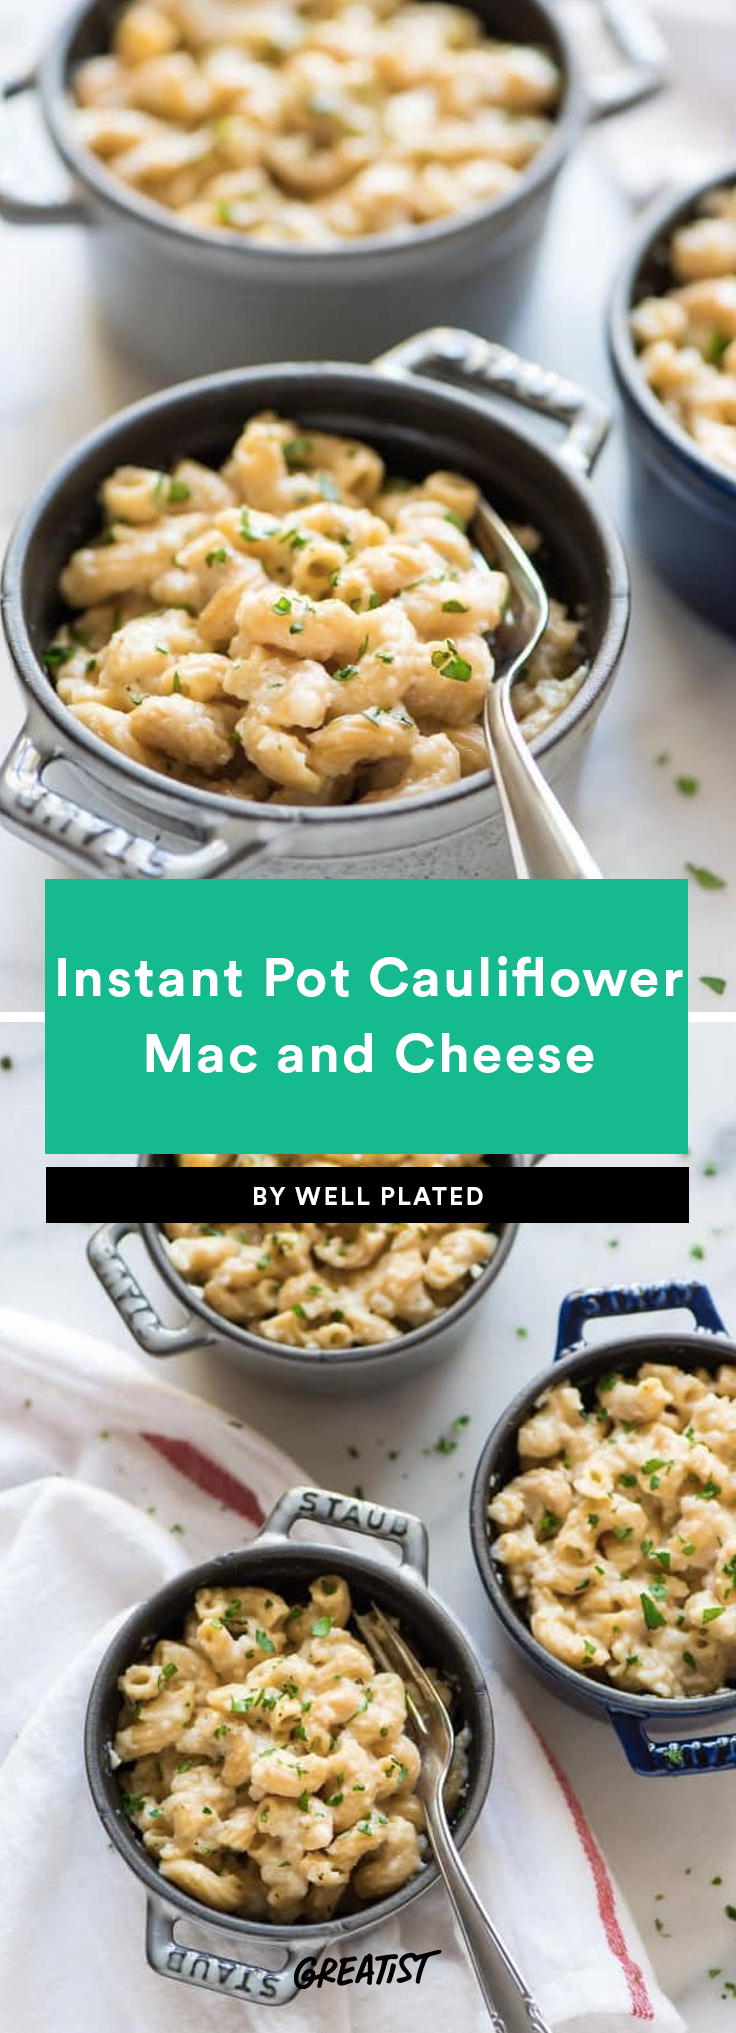 The Best Instant Pot Recipes for Meal Prep   Greatist